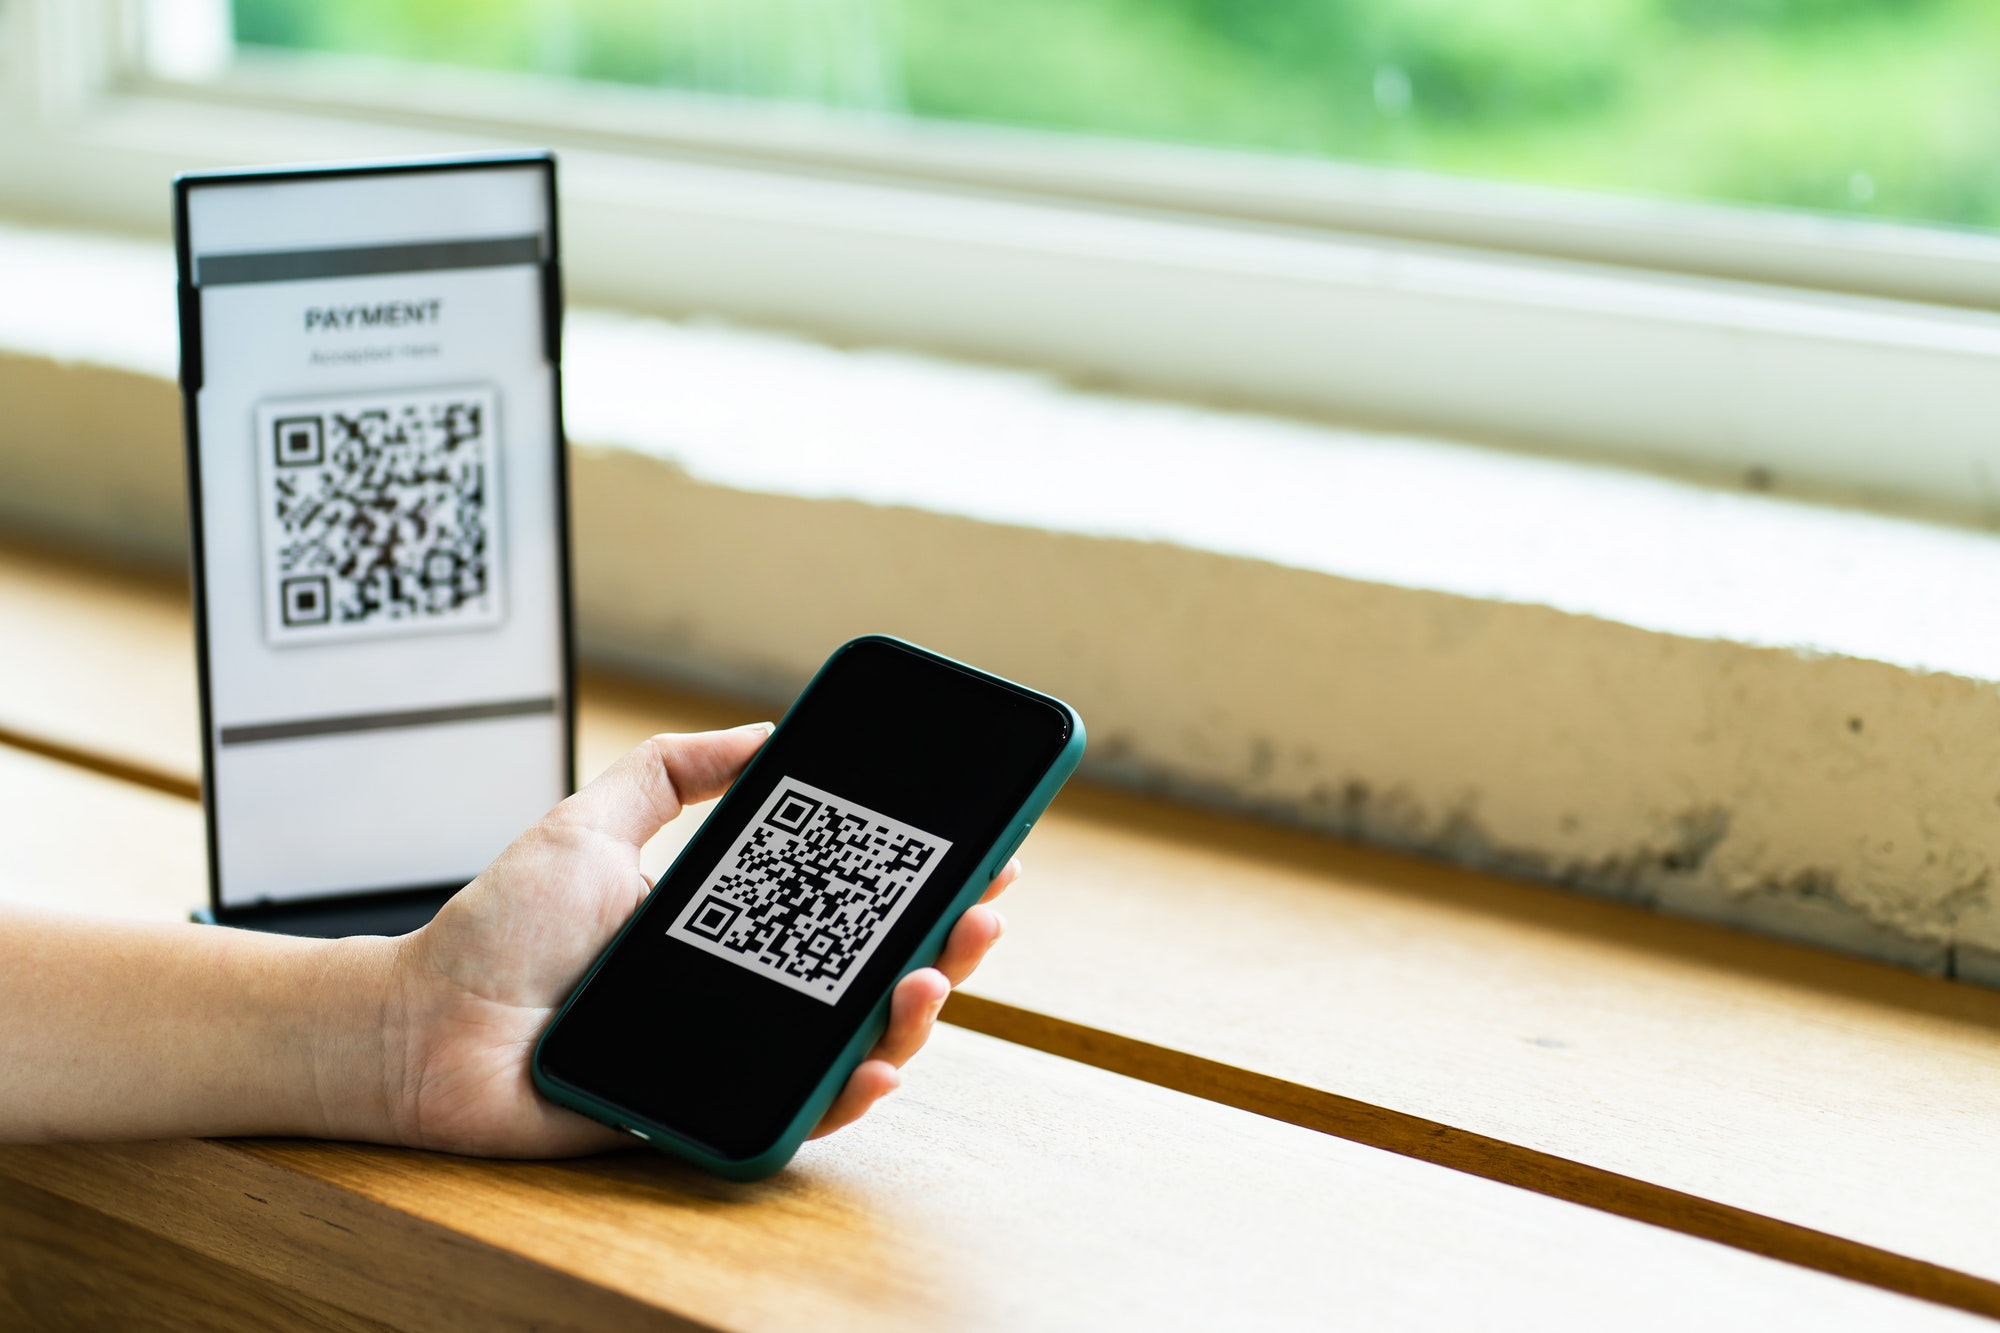 Online money, Close up hand holding smart phone for scanning Qr code for digital payment.